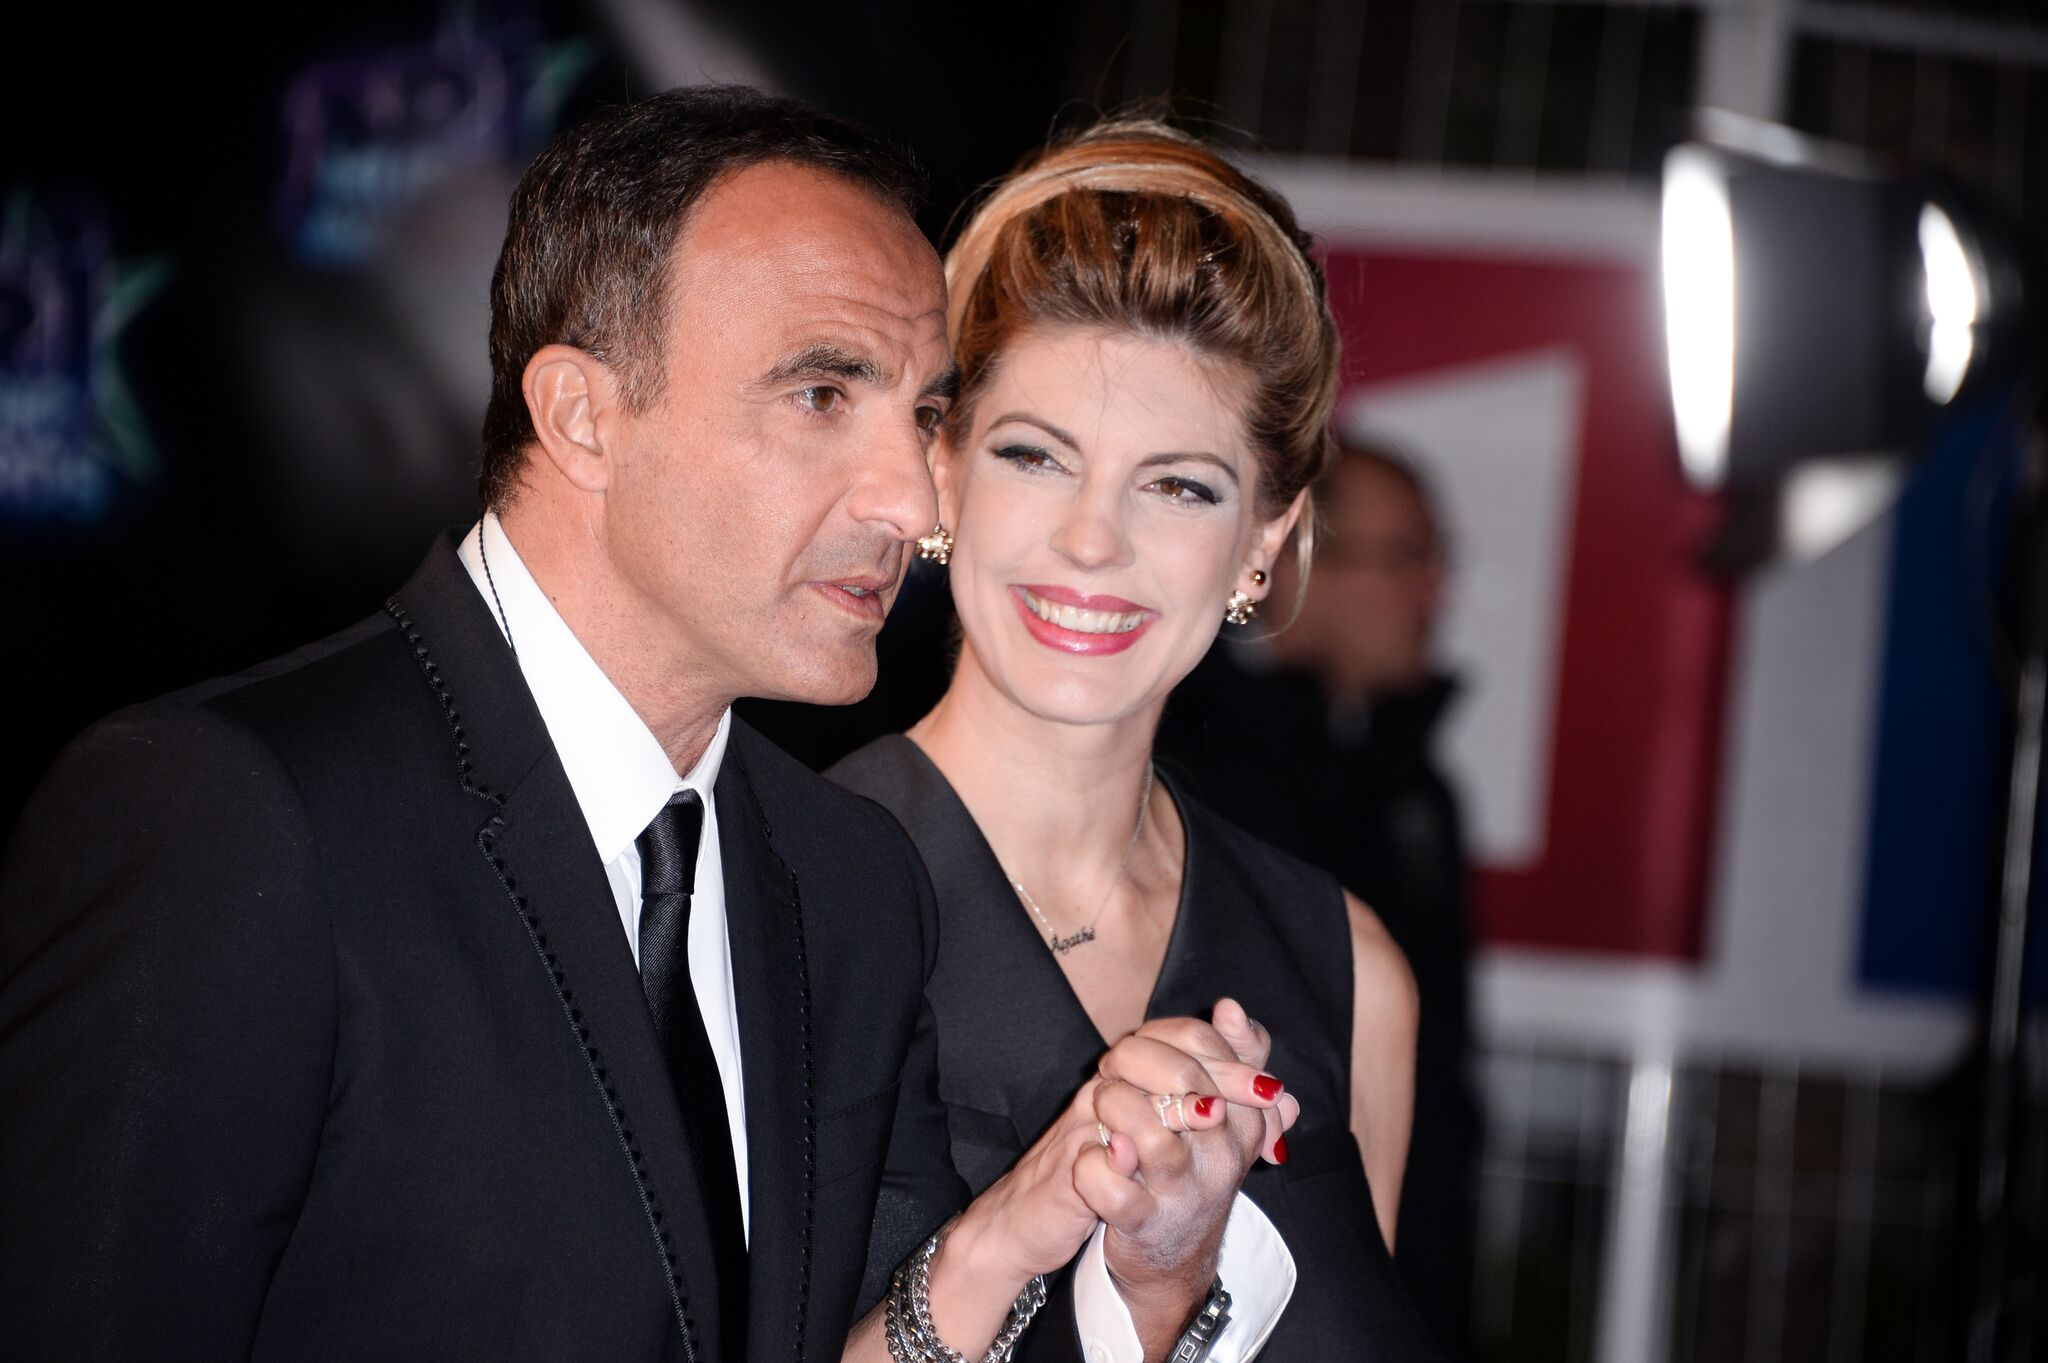 Nikos et sa compagne Tina. l Source: Getty Images